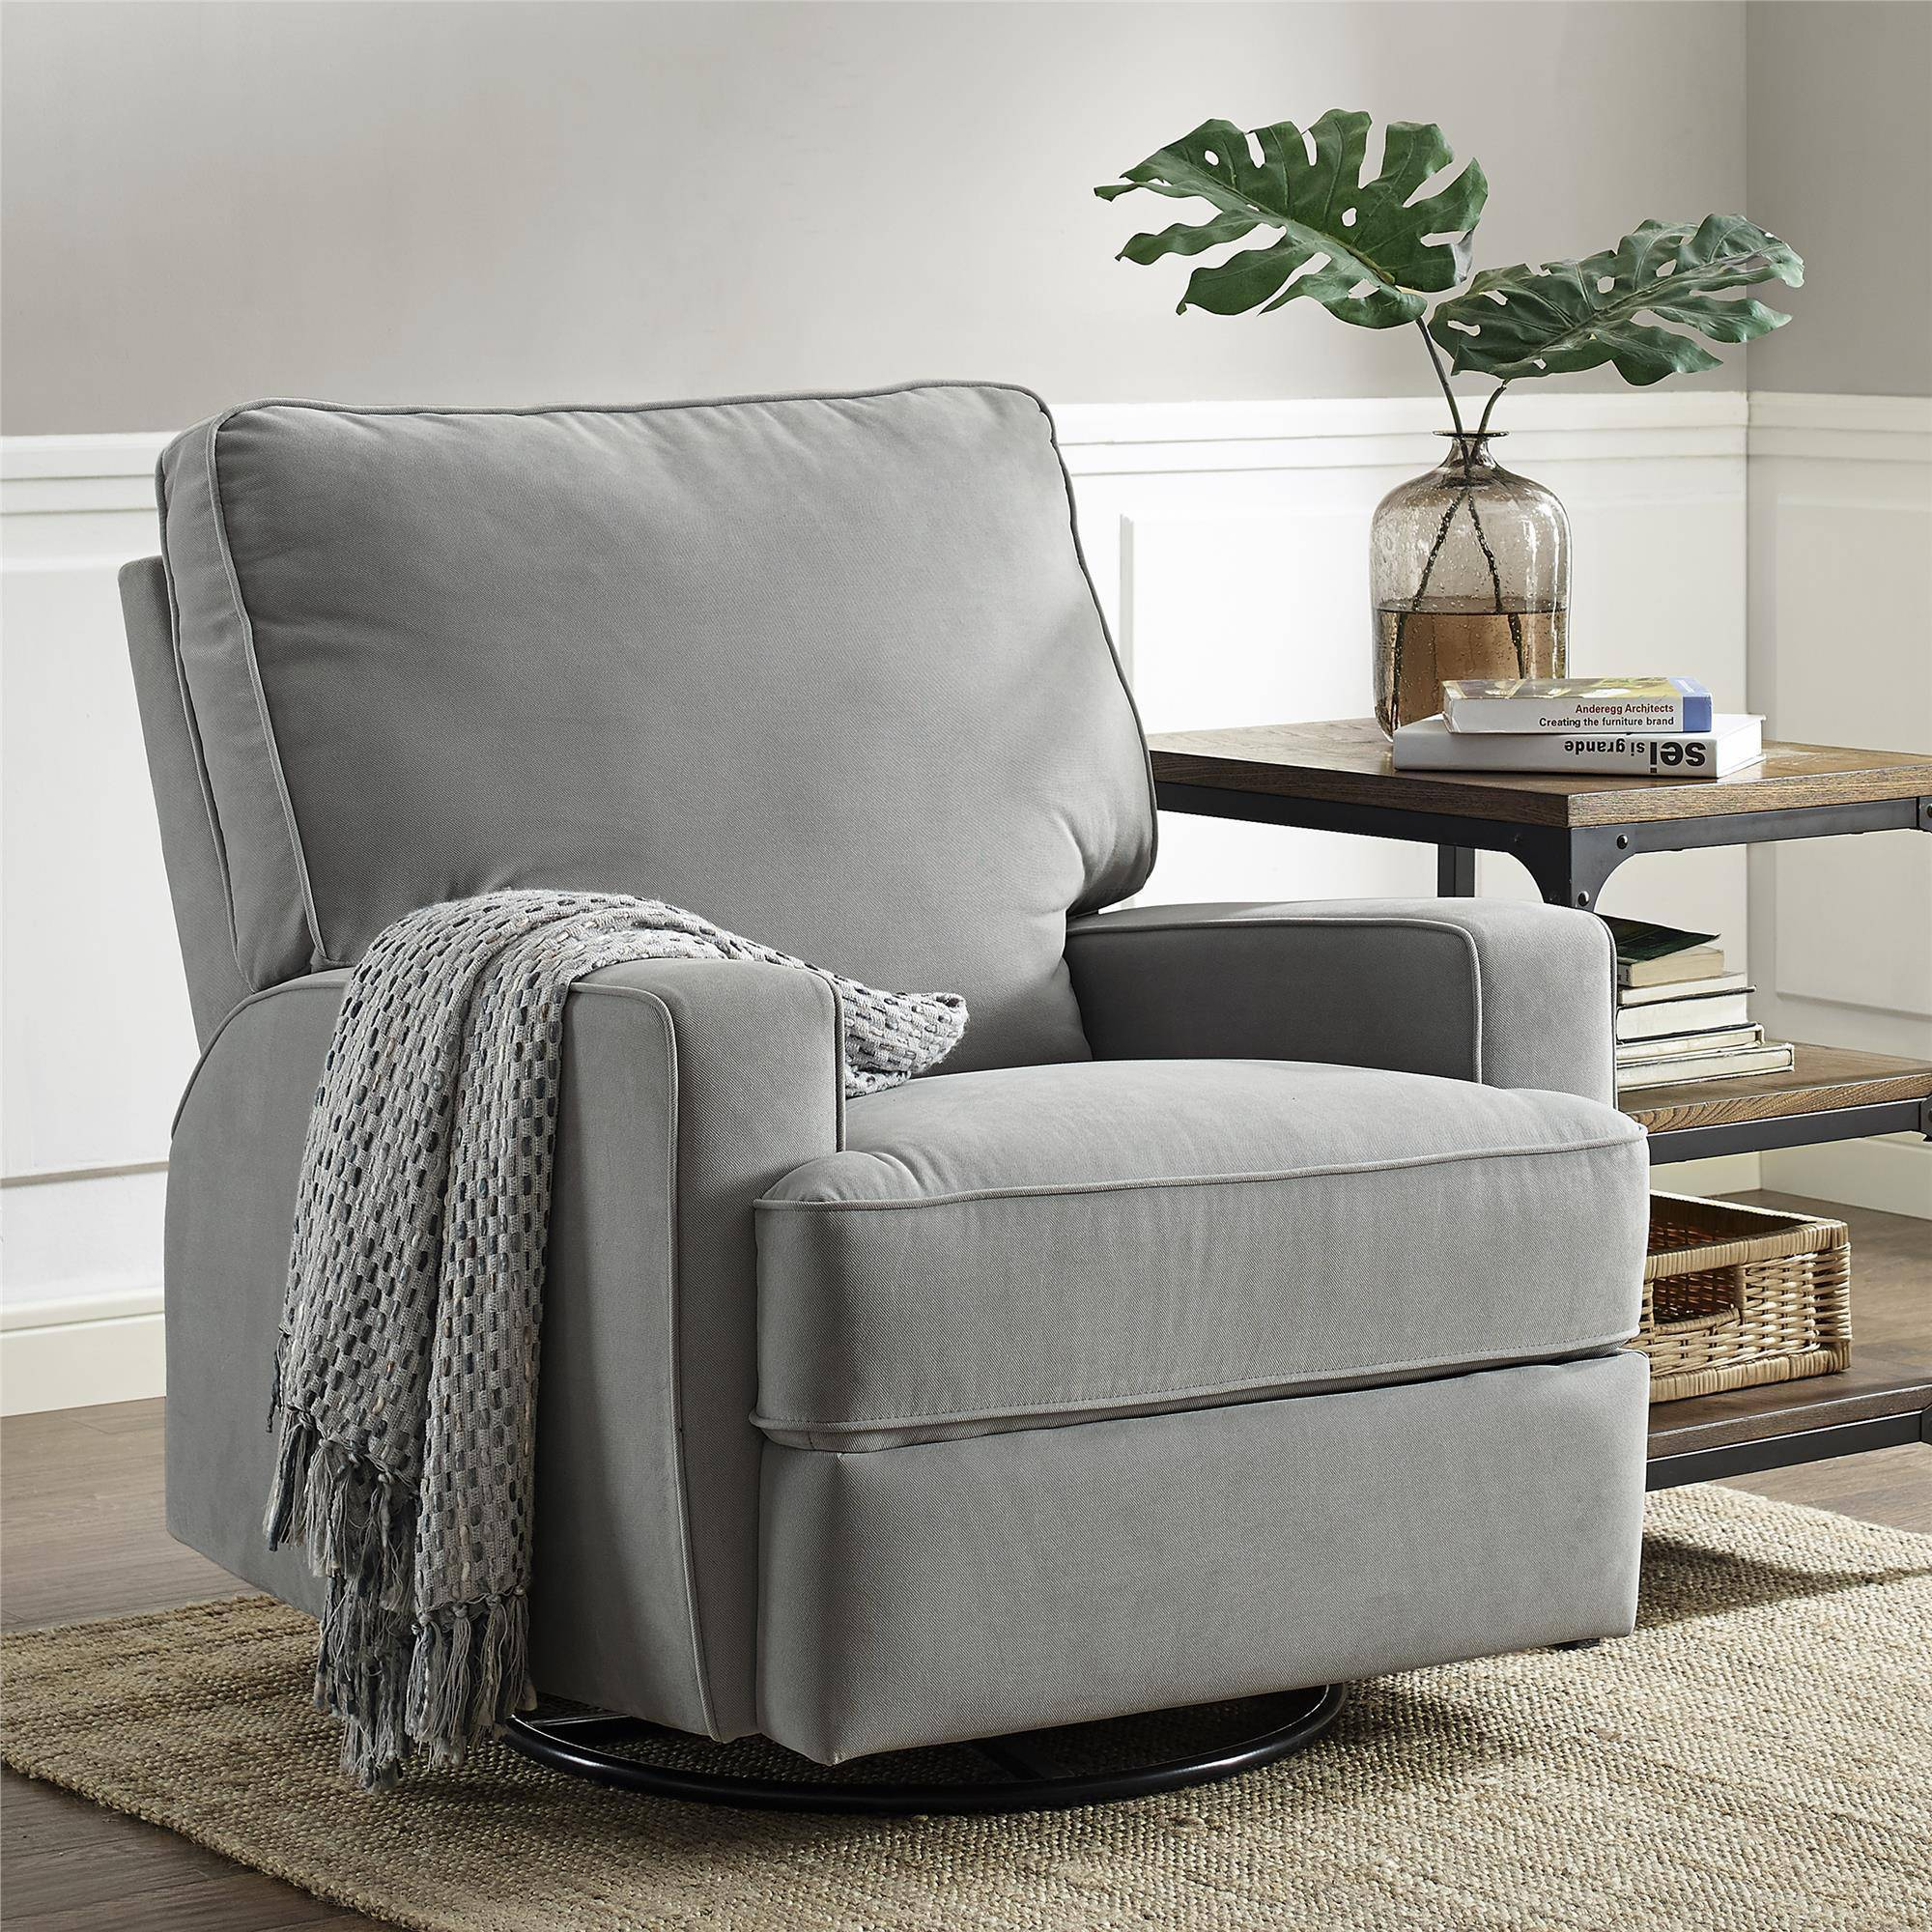 Image of: Baby Glider Rocking Chair Nursery Recliner Nursing Seat Swivel Furniture Gray Ebay